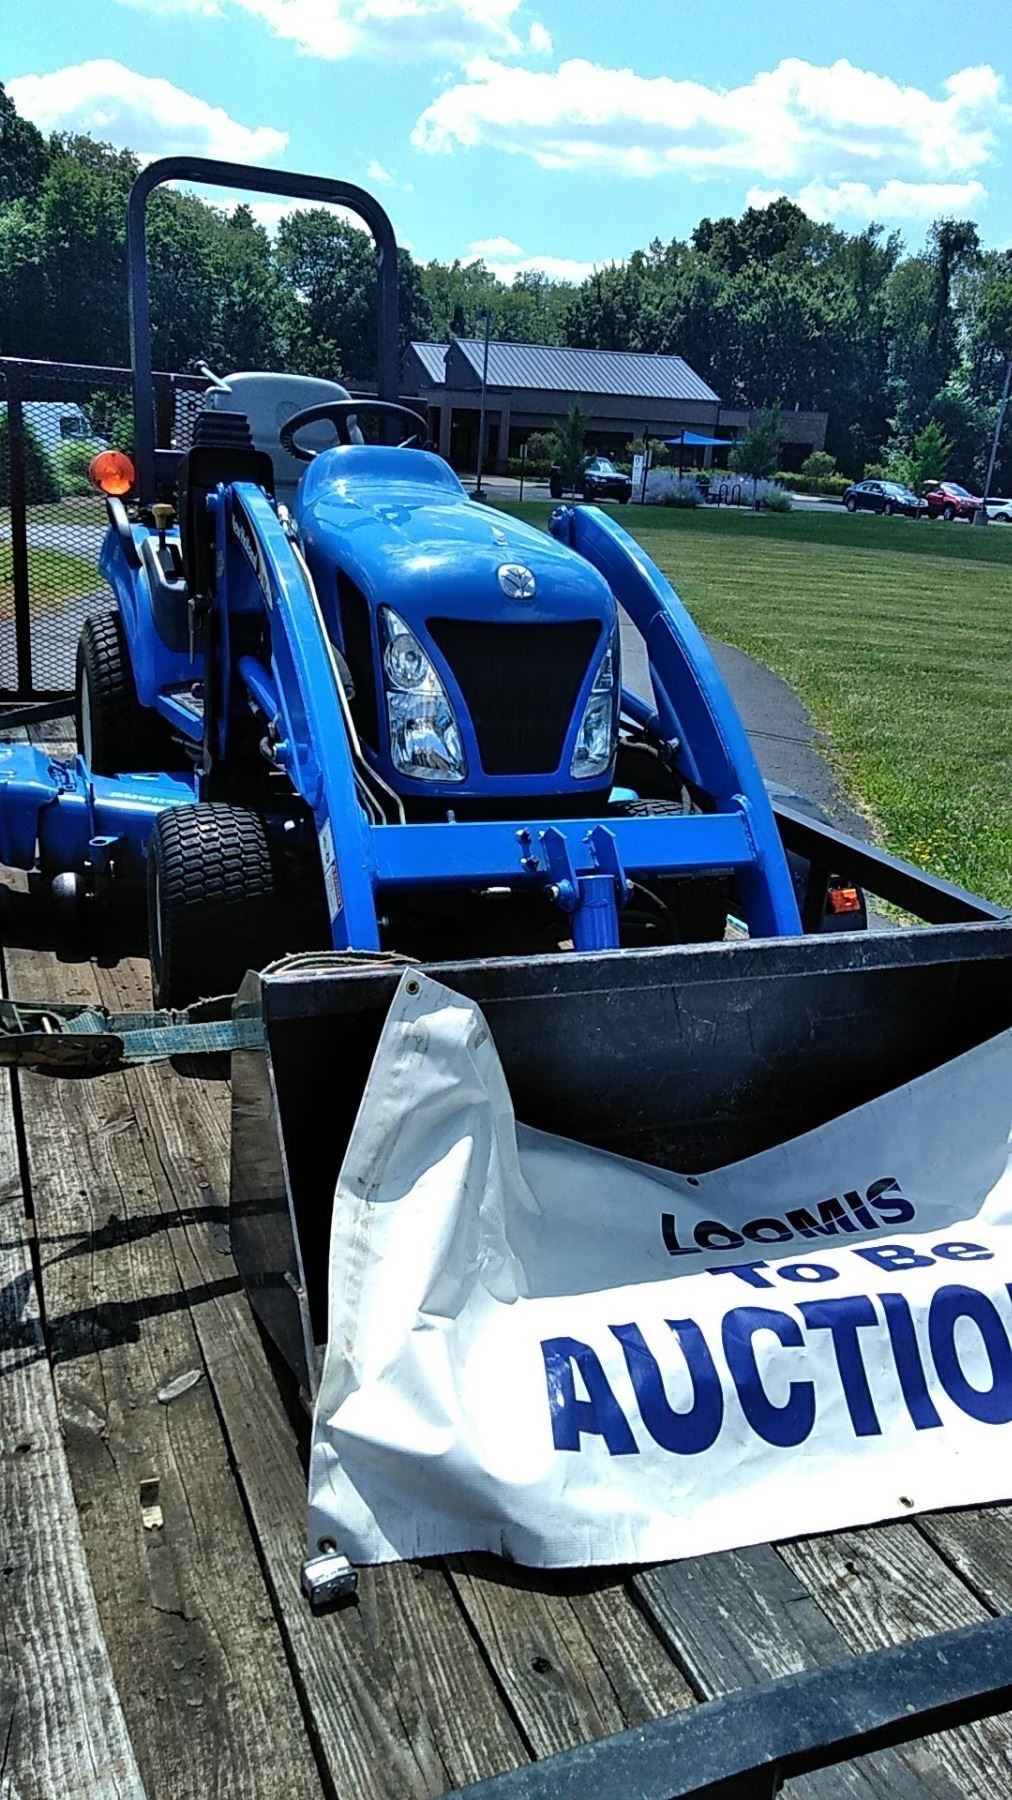 ... Image 3 : NEW HOLLAND TZ25DA Diesel Tractor w Attachments $26,000  Approx New ...